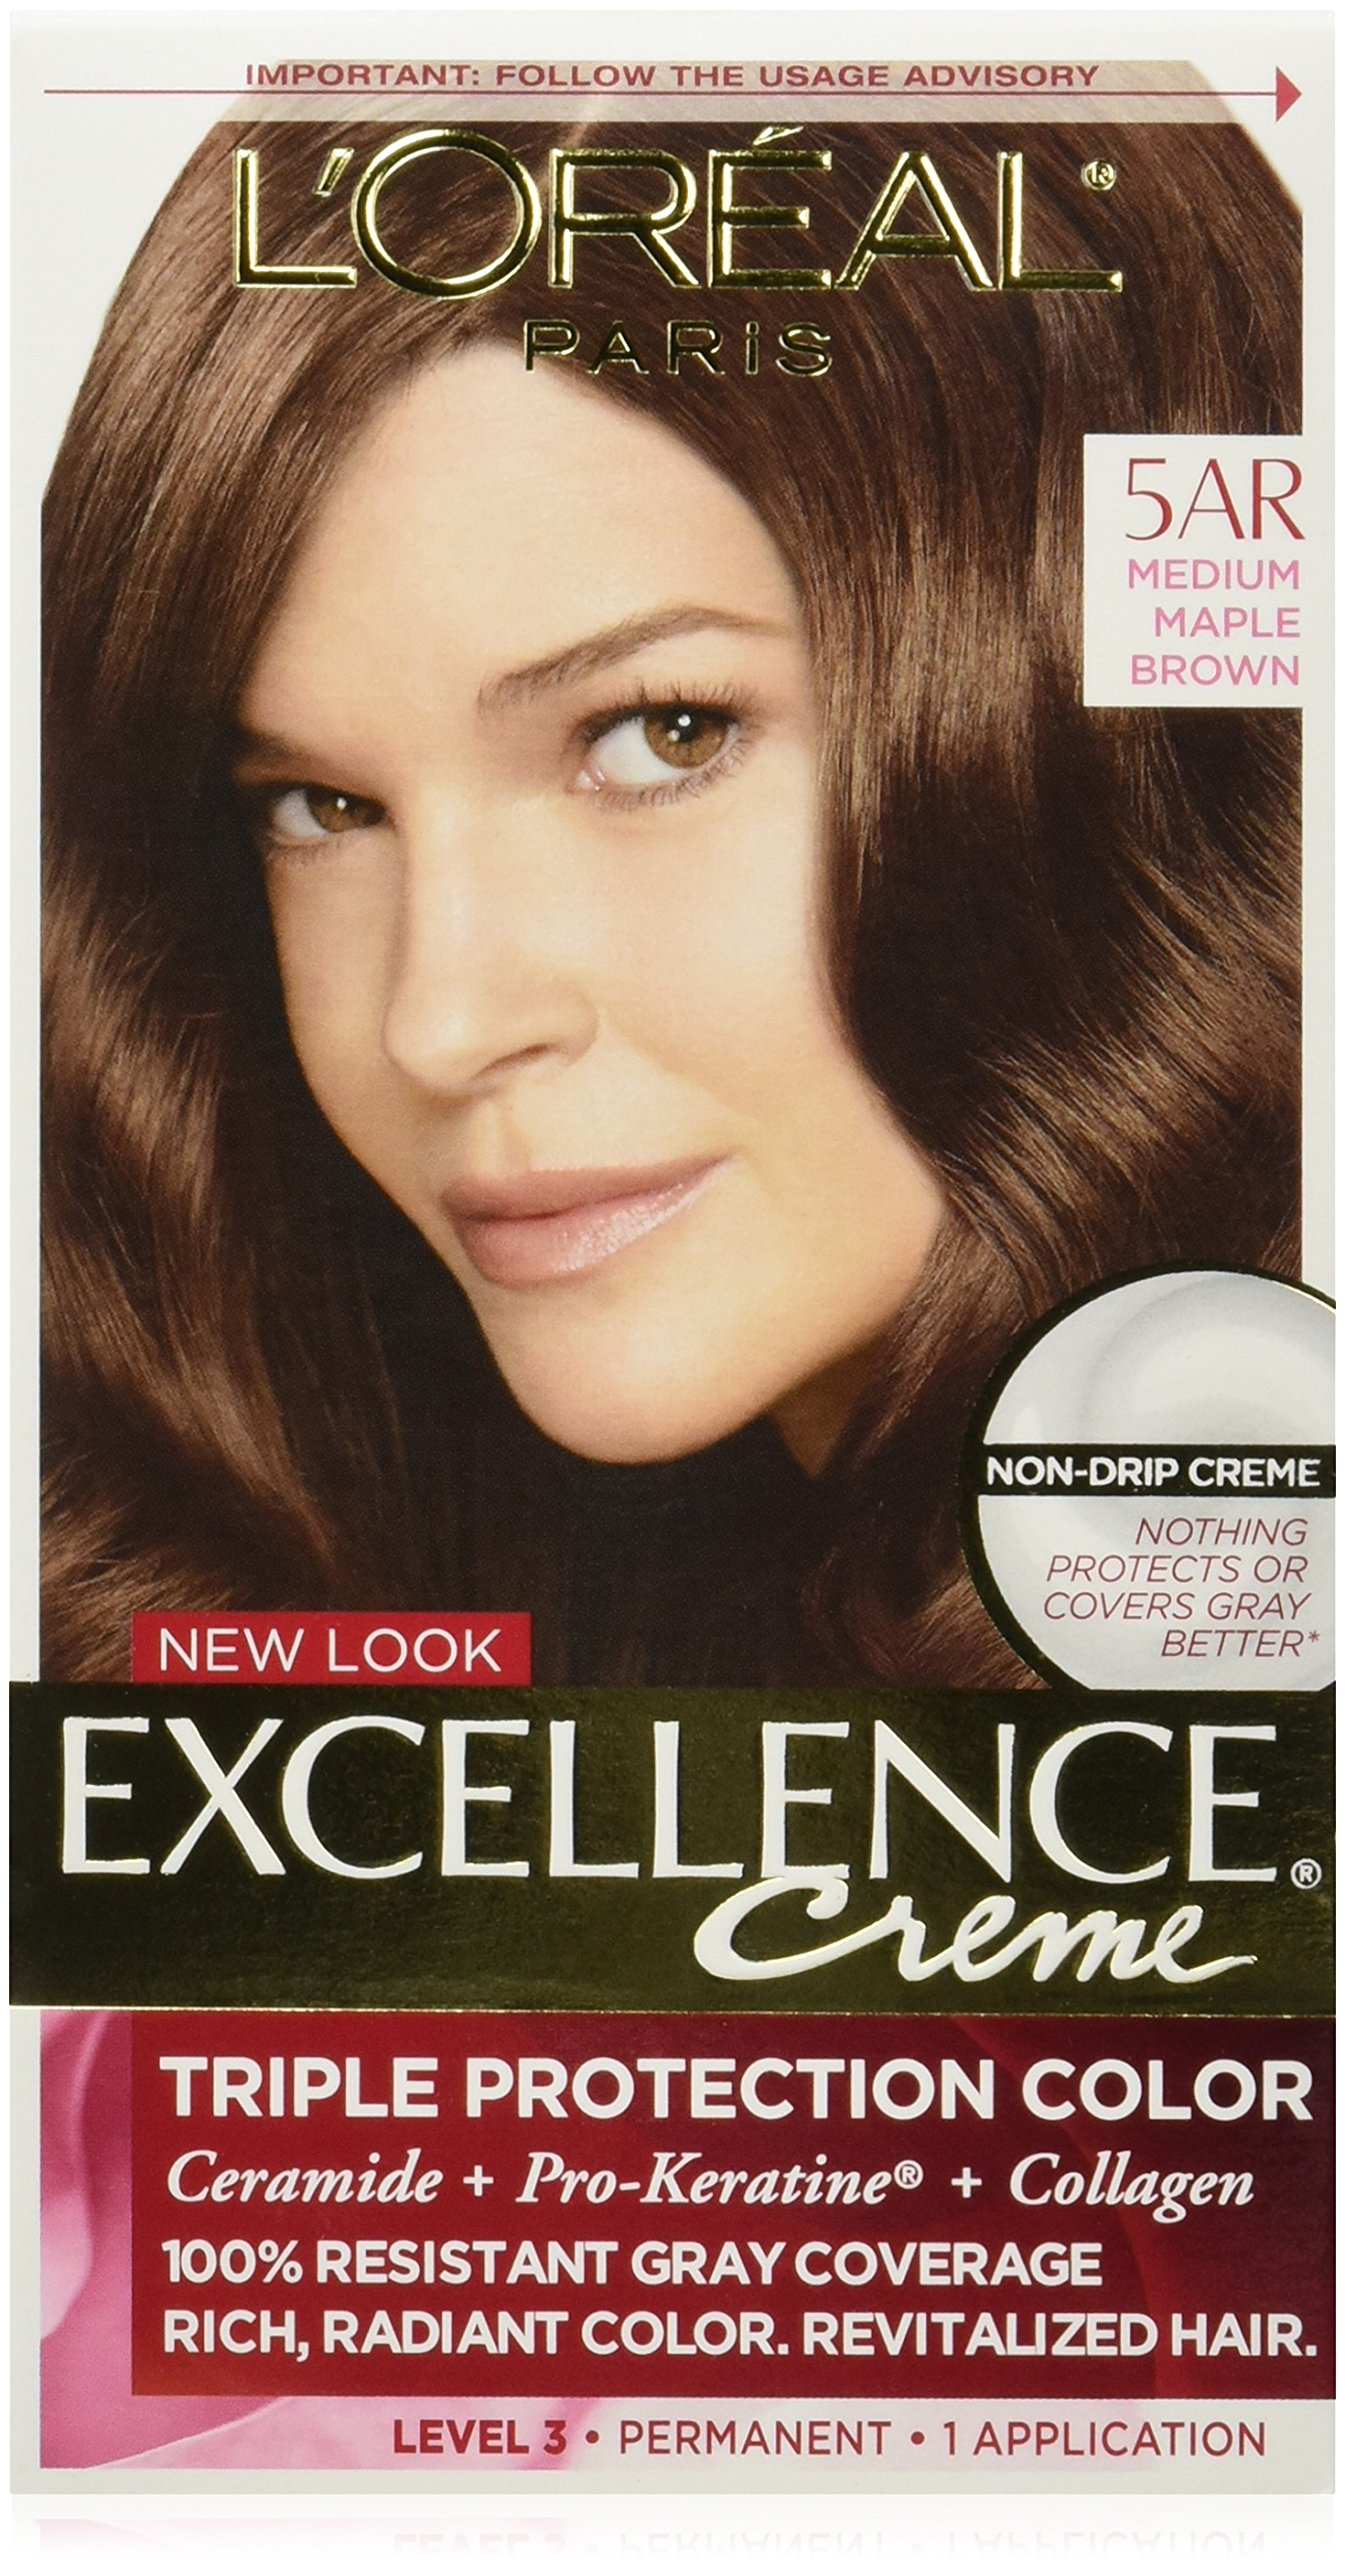 Amazon loral paris excellence crme permanent hair color loreal excellence creme 5ar velvet brown medium maple brown 1 each geenschuldenfo Images